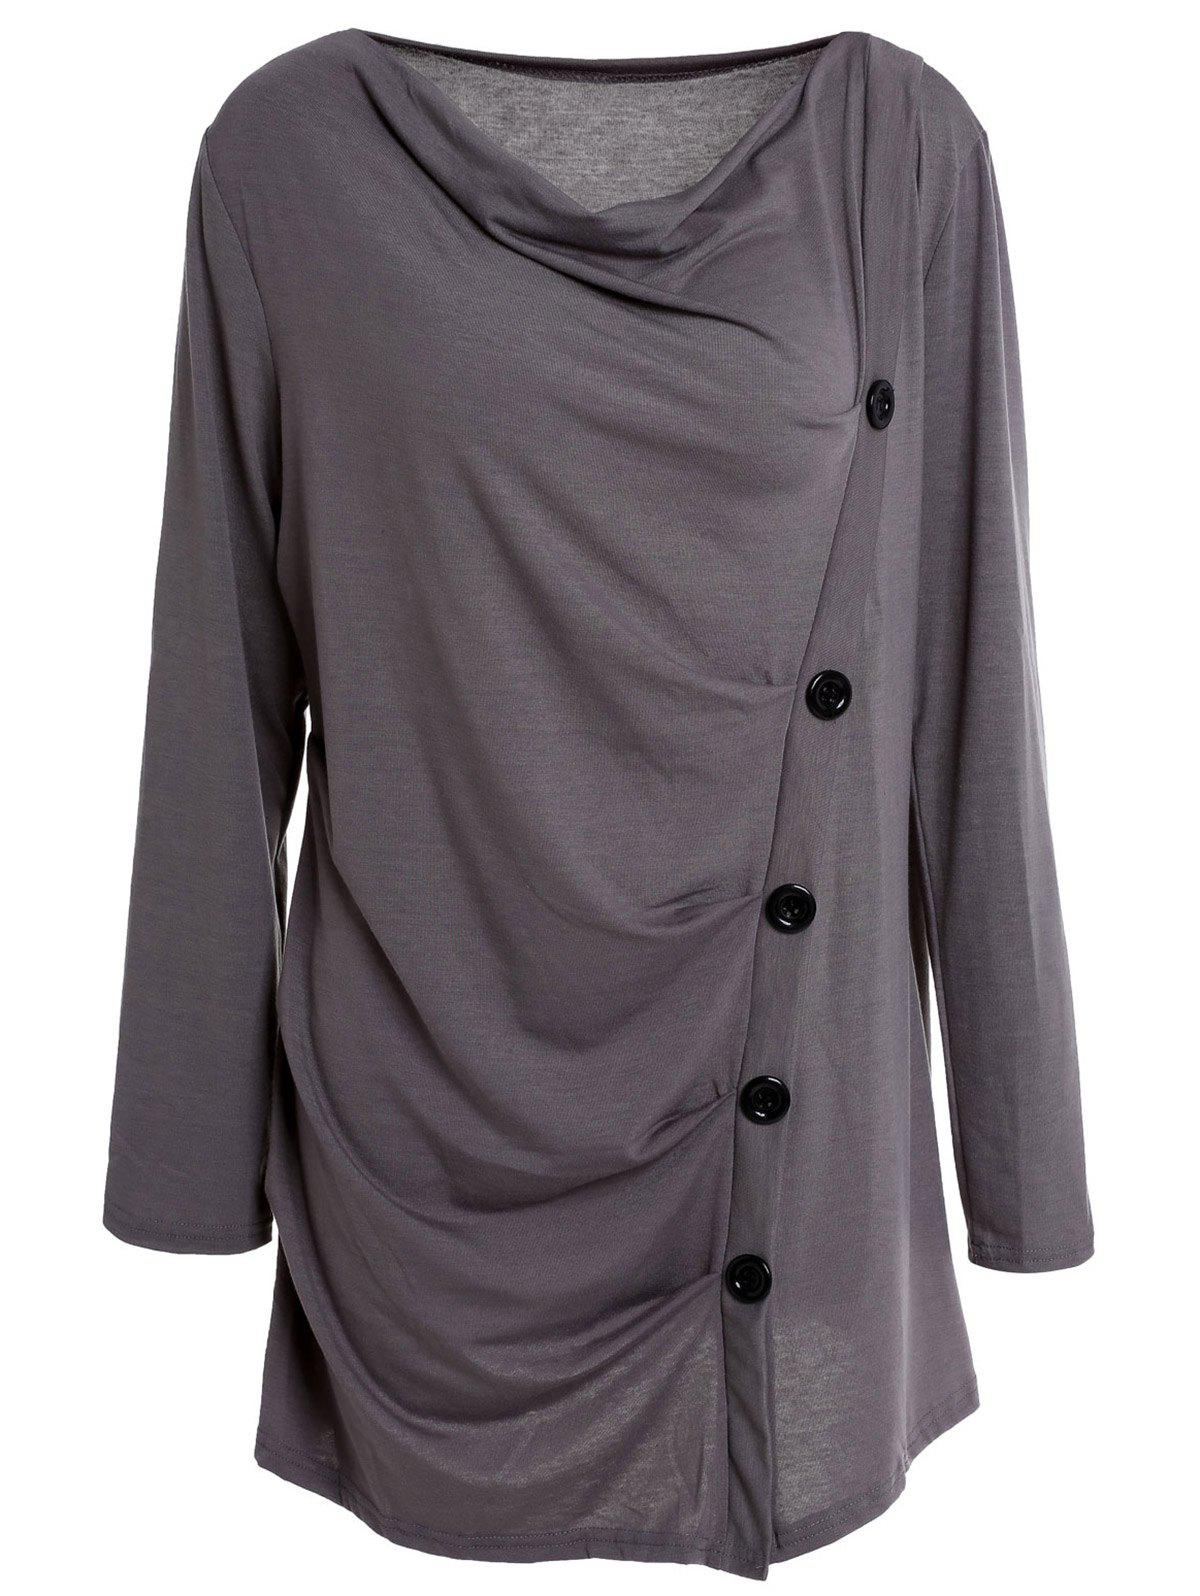 Stylish Long Sleeve Cowl Neck Solid Color Draped Womens T-ShirtWomen<br><br><br>Size: L<br>Color: GRAY